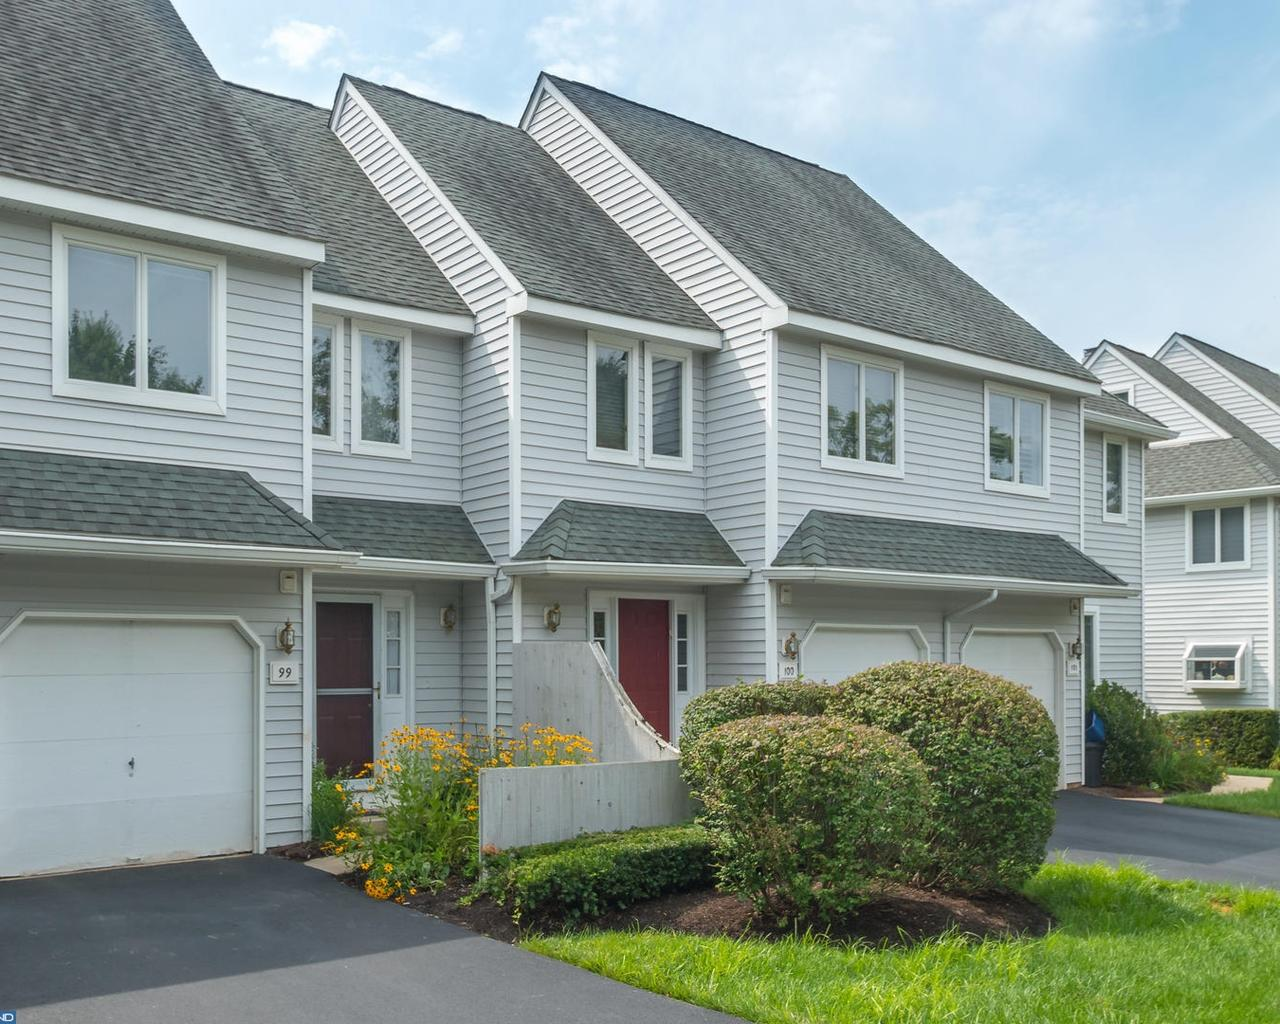 Property for sale at 99 E THOMAS CT, Kennett Square,  PA 19348